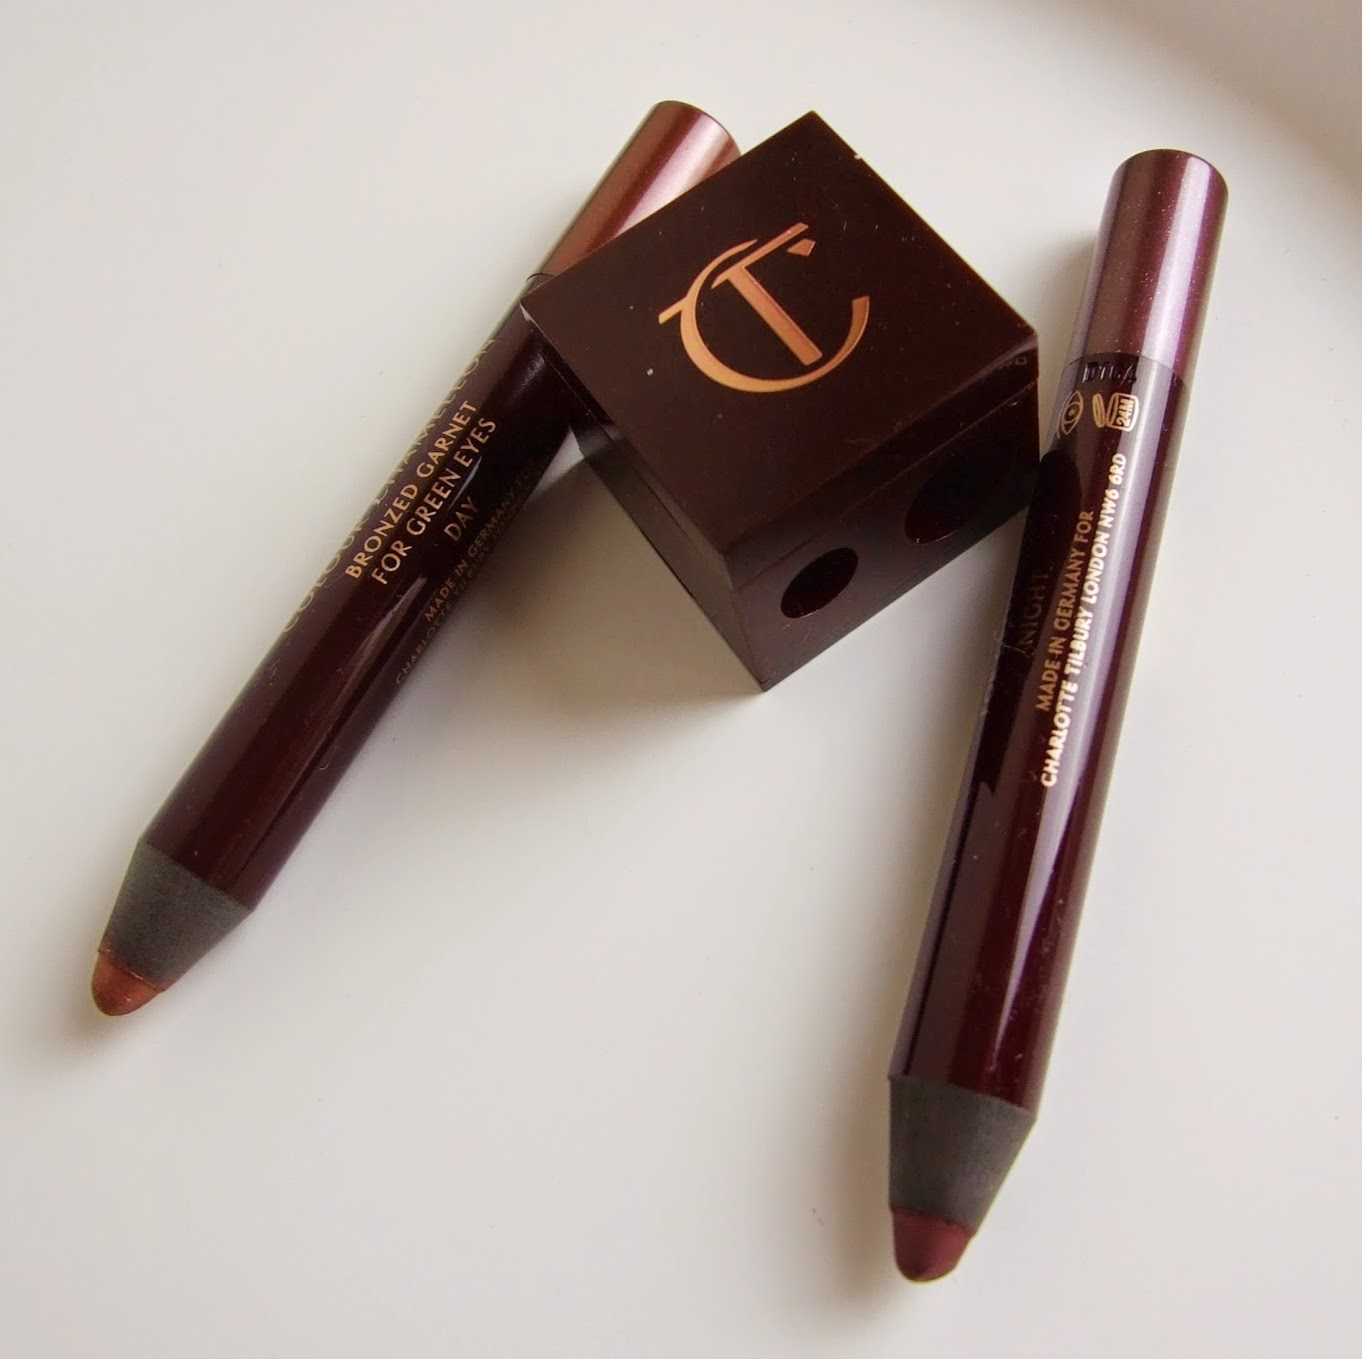 charlotte tilbury make-up colour chameleons bronzed garnet amethyst aphrodisiac swatches